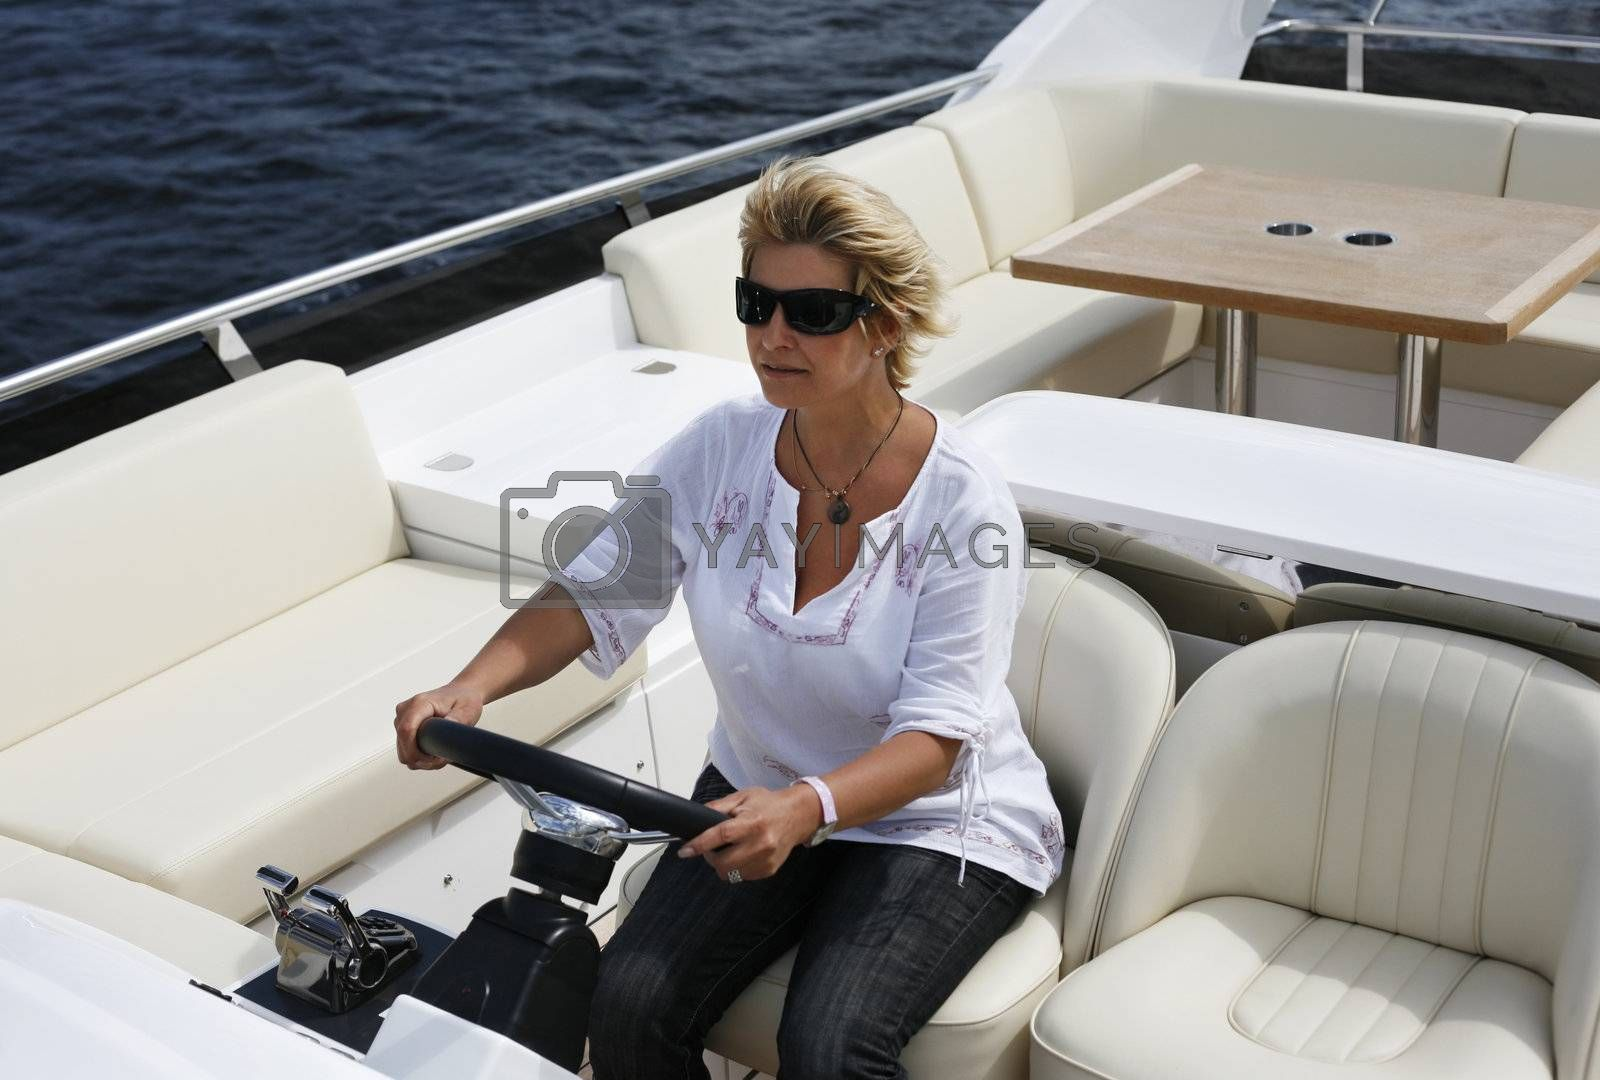 The adult woman behind a steering wheel of a yacht